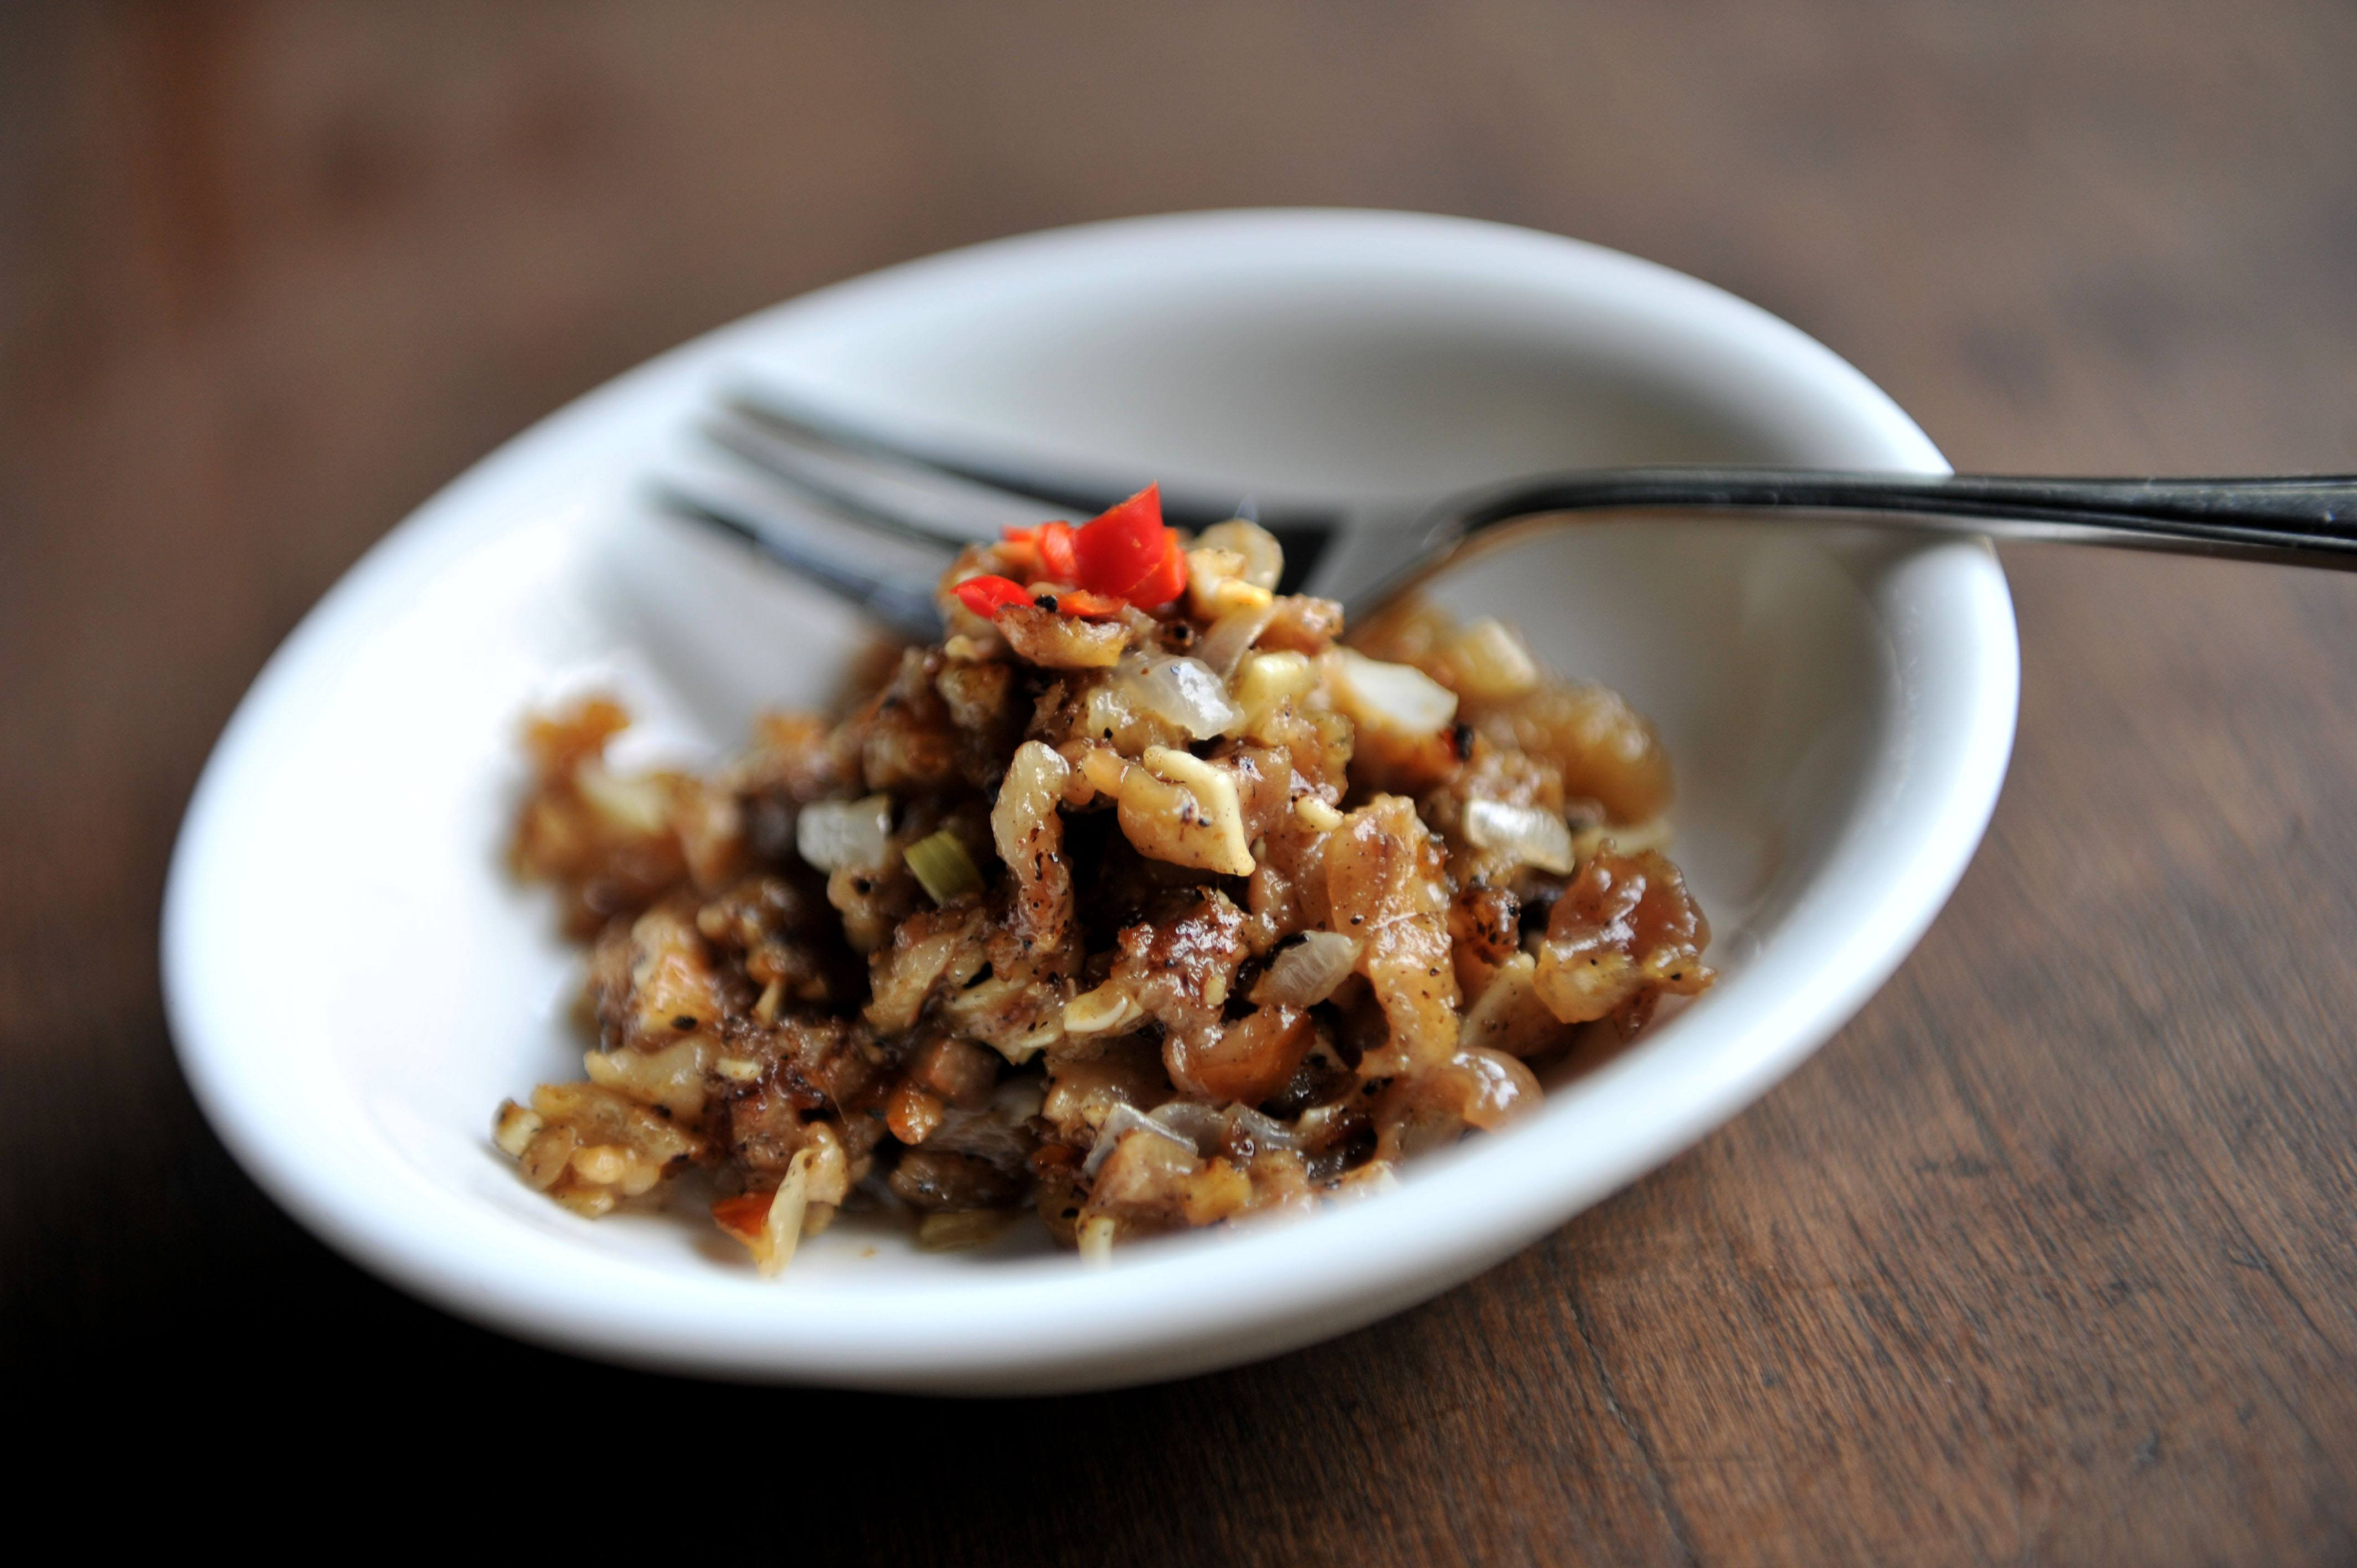 Sisig cuisine from the Phillipines